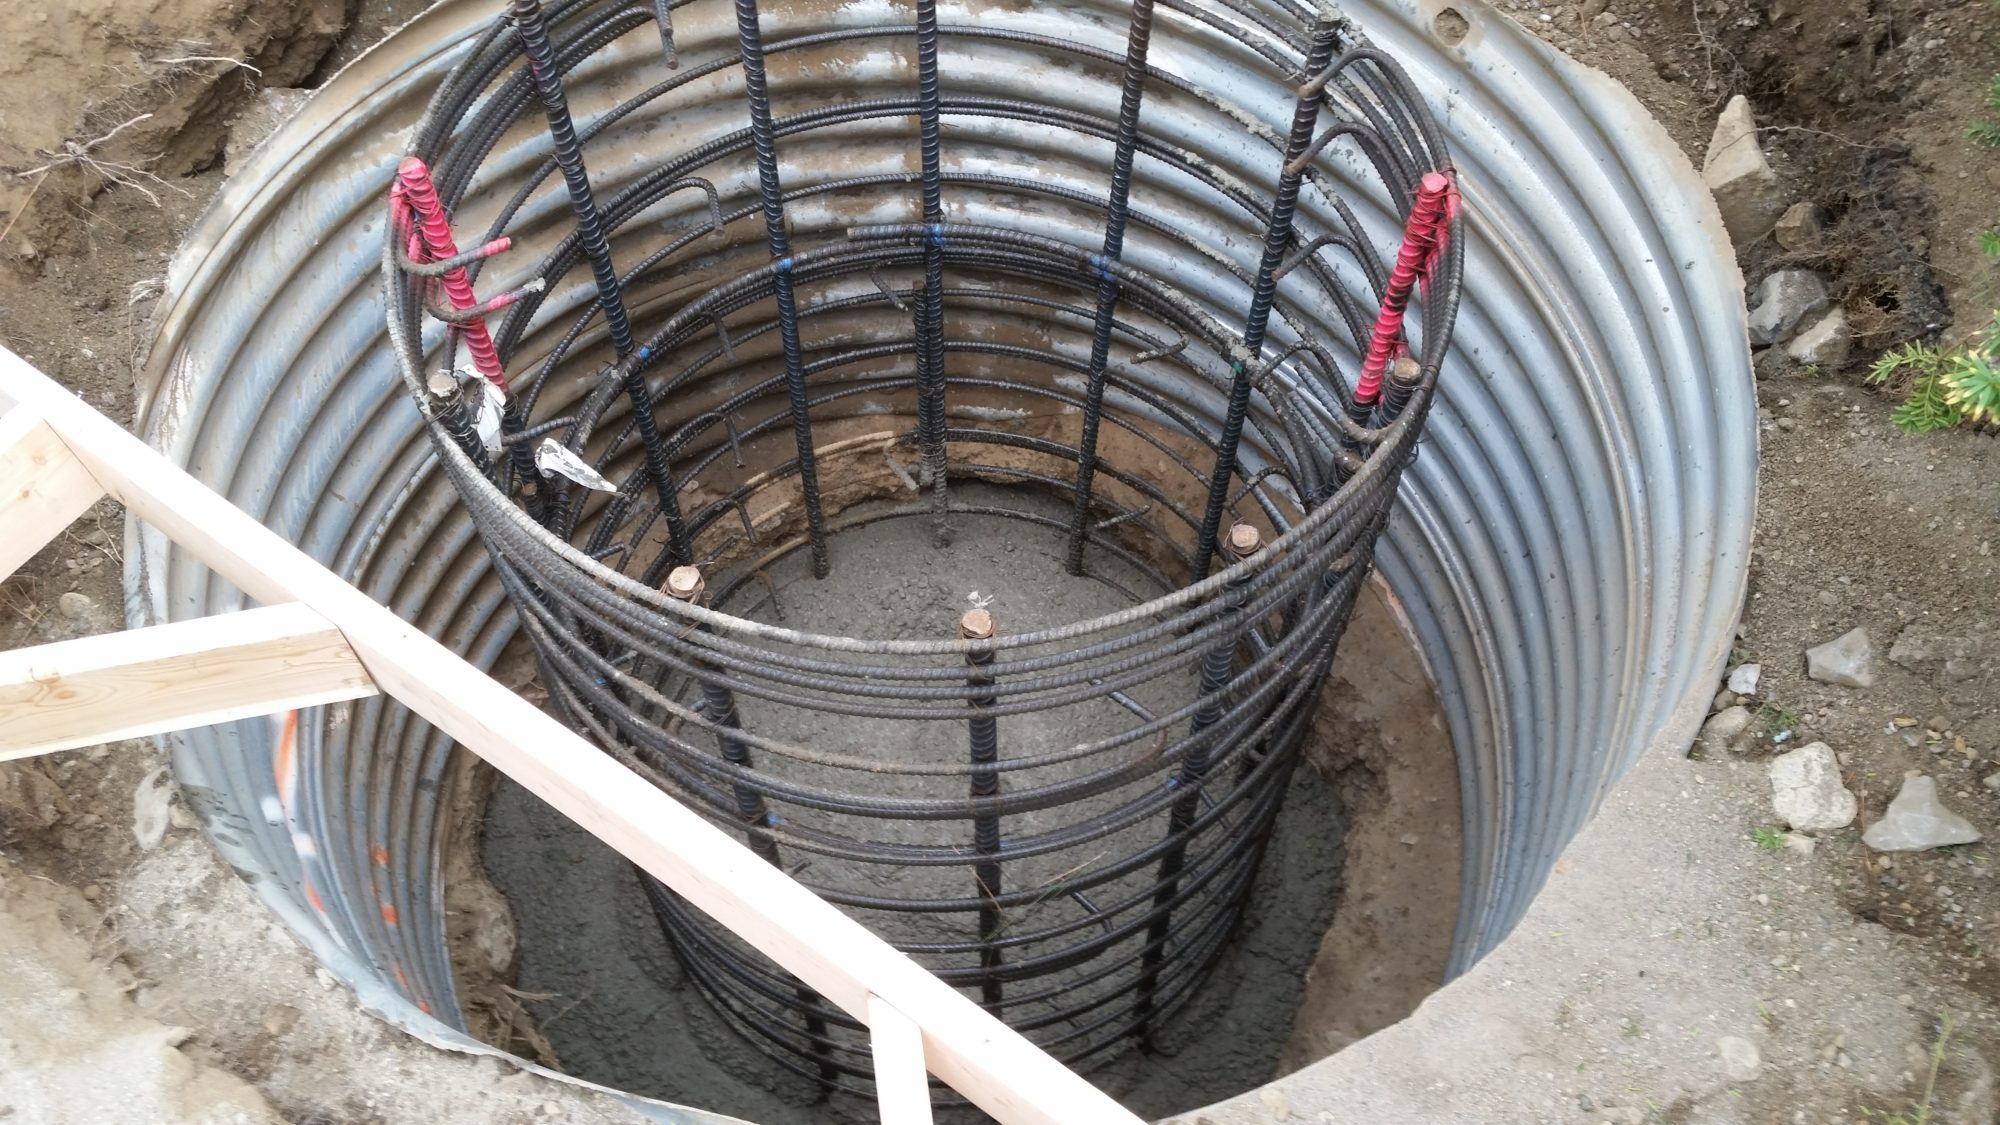 Rebar Cage Cell Tower Foundation